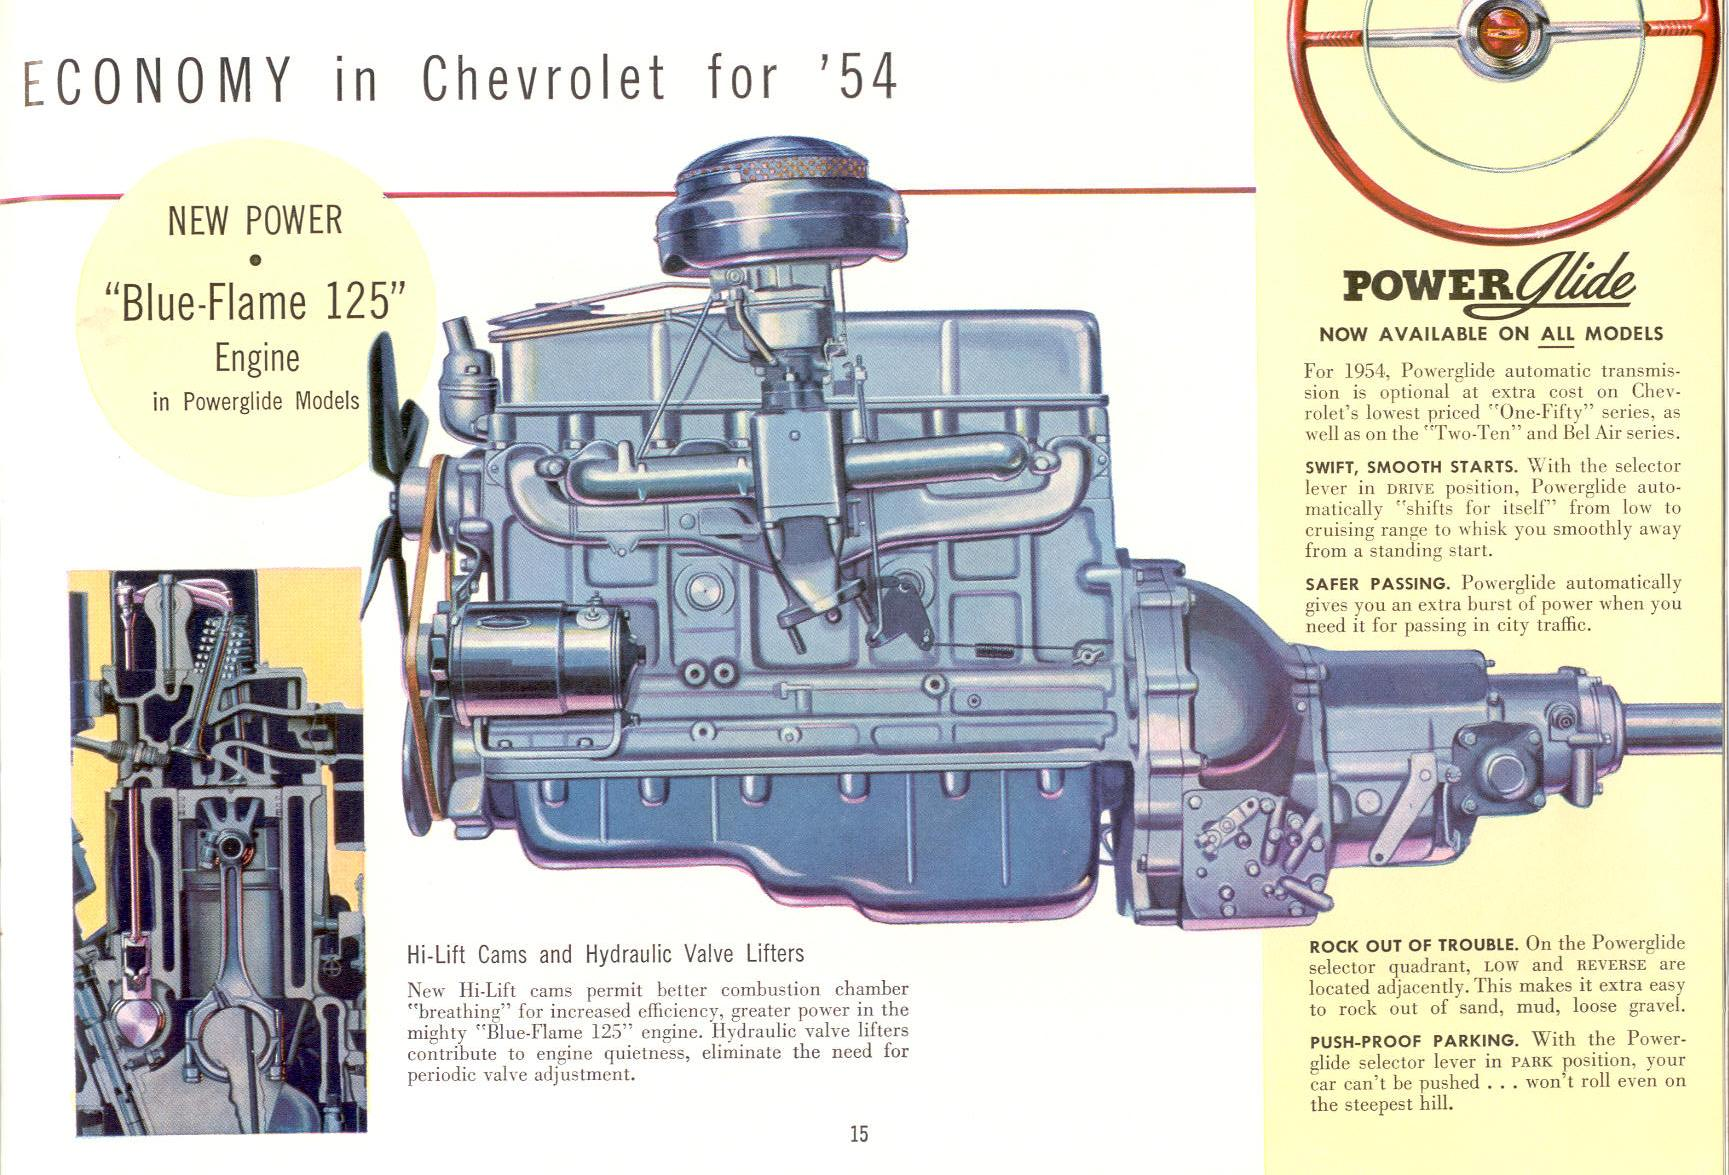 hight resolution of 1954 powerglide transmission diagram wiring diagram1954 models 1954 powerglide transmission diagram